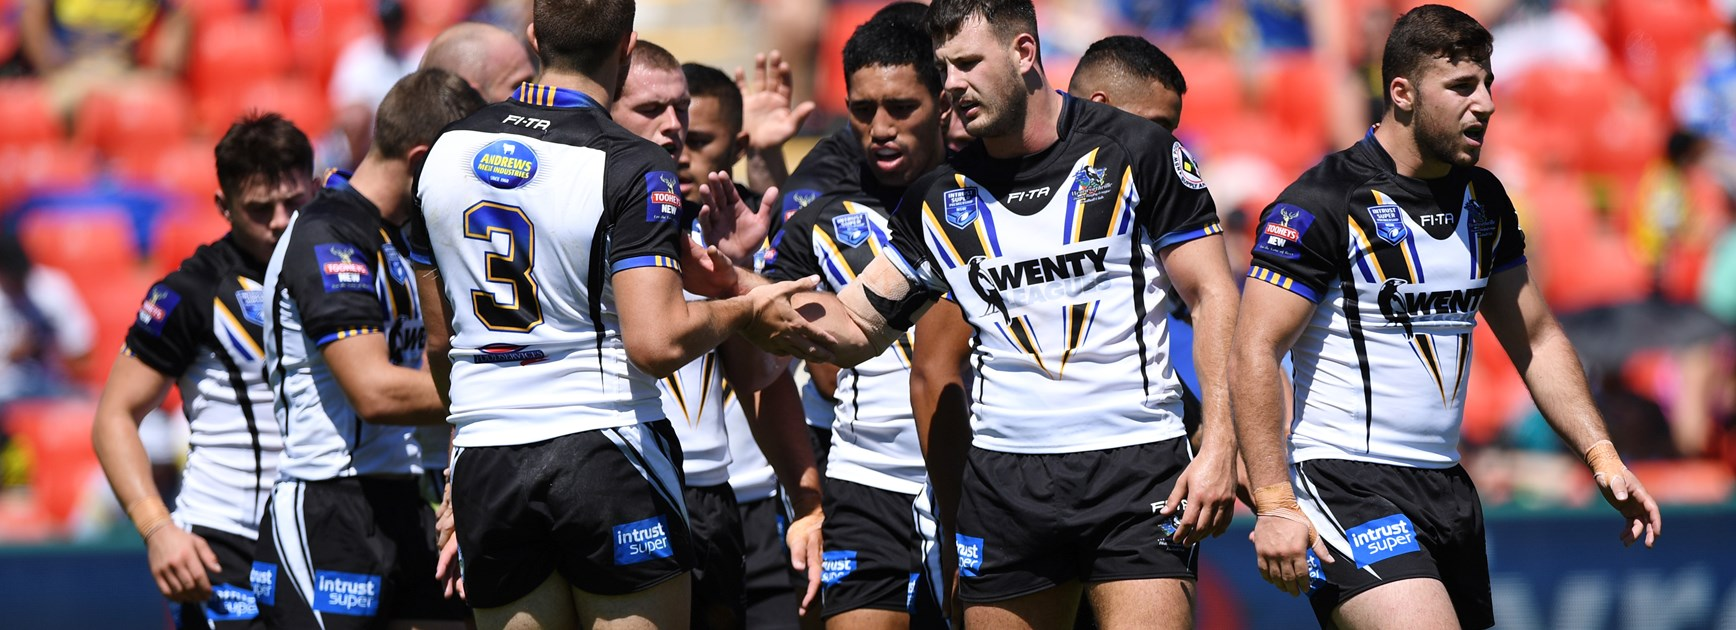 Magpies survive second half scare in win over Penrith